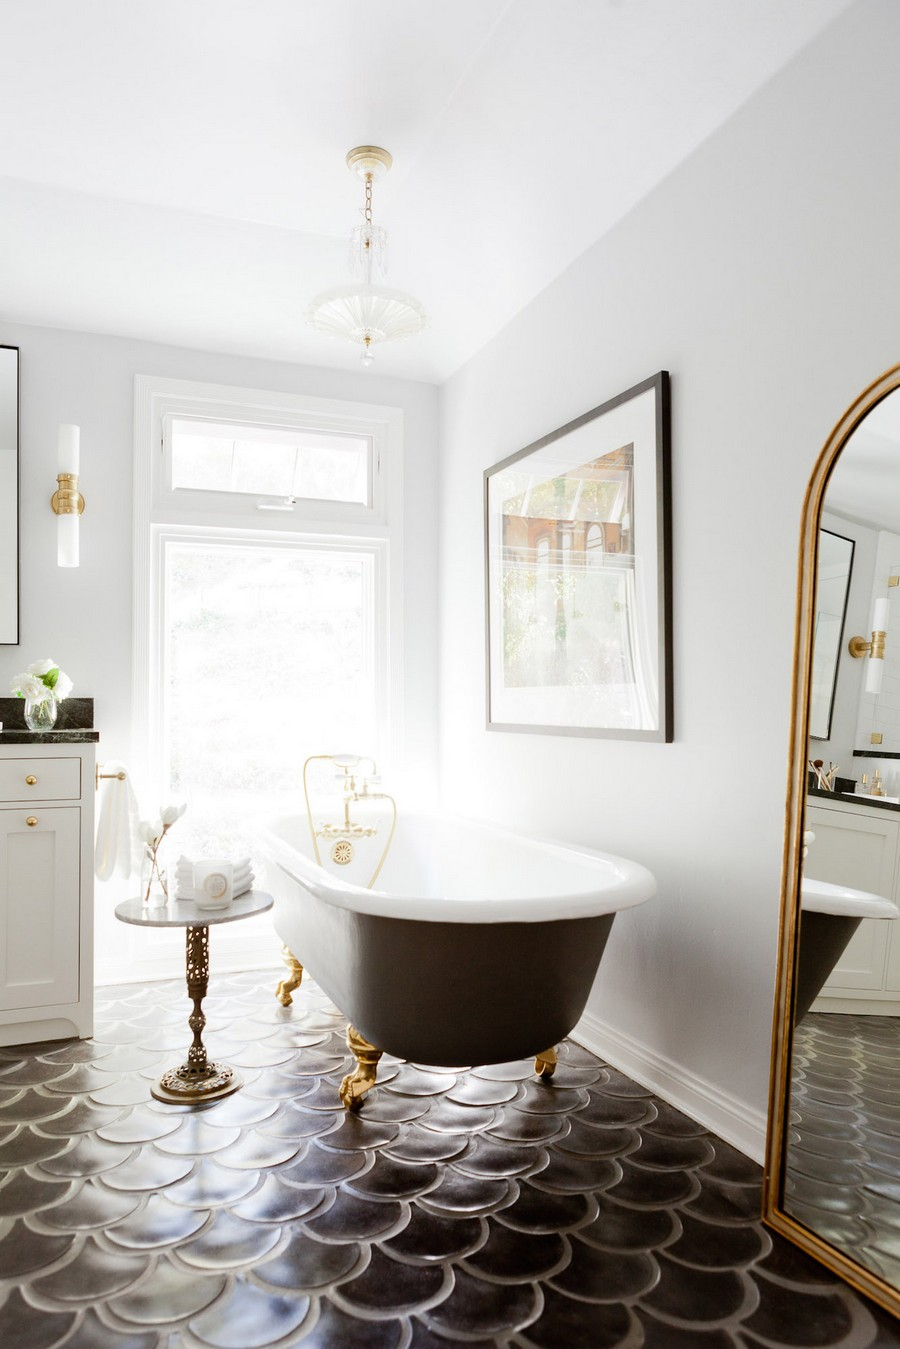 Start The Year With The Right Foot With The Bathroom Tile Trends 2019 Bathroom Tile Trends Start The Year With The Right Foot With The Bathroom Tile Trends 2019 Start The Year With The Right Foot With The Bathroom Tile Trends 2019 11